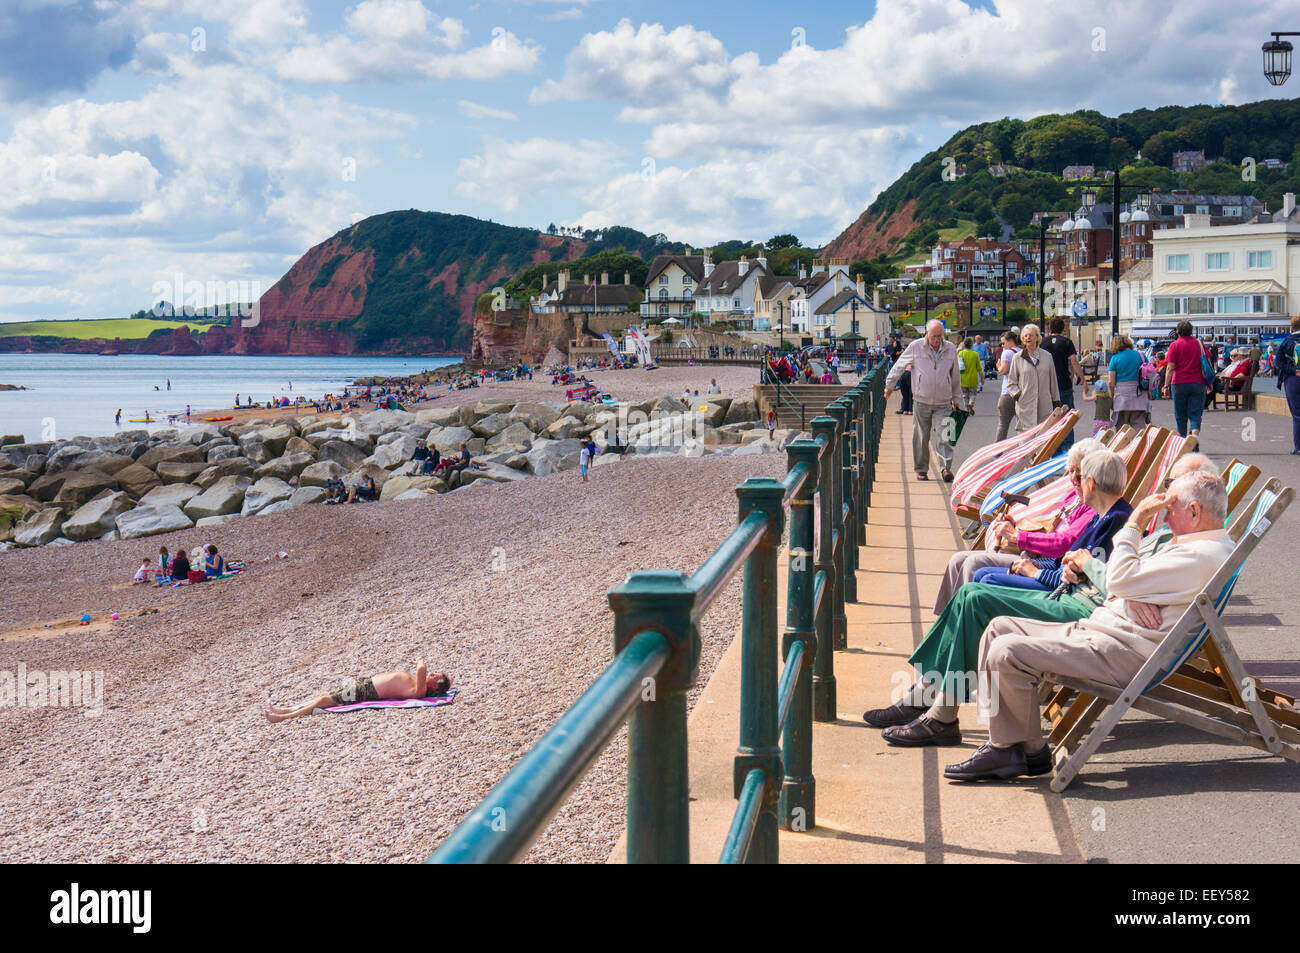 People sitting in deckchairs on the seafront at Sidmouth, East Devon, England, UK - Stock Image